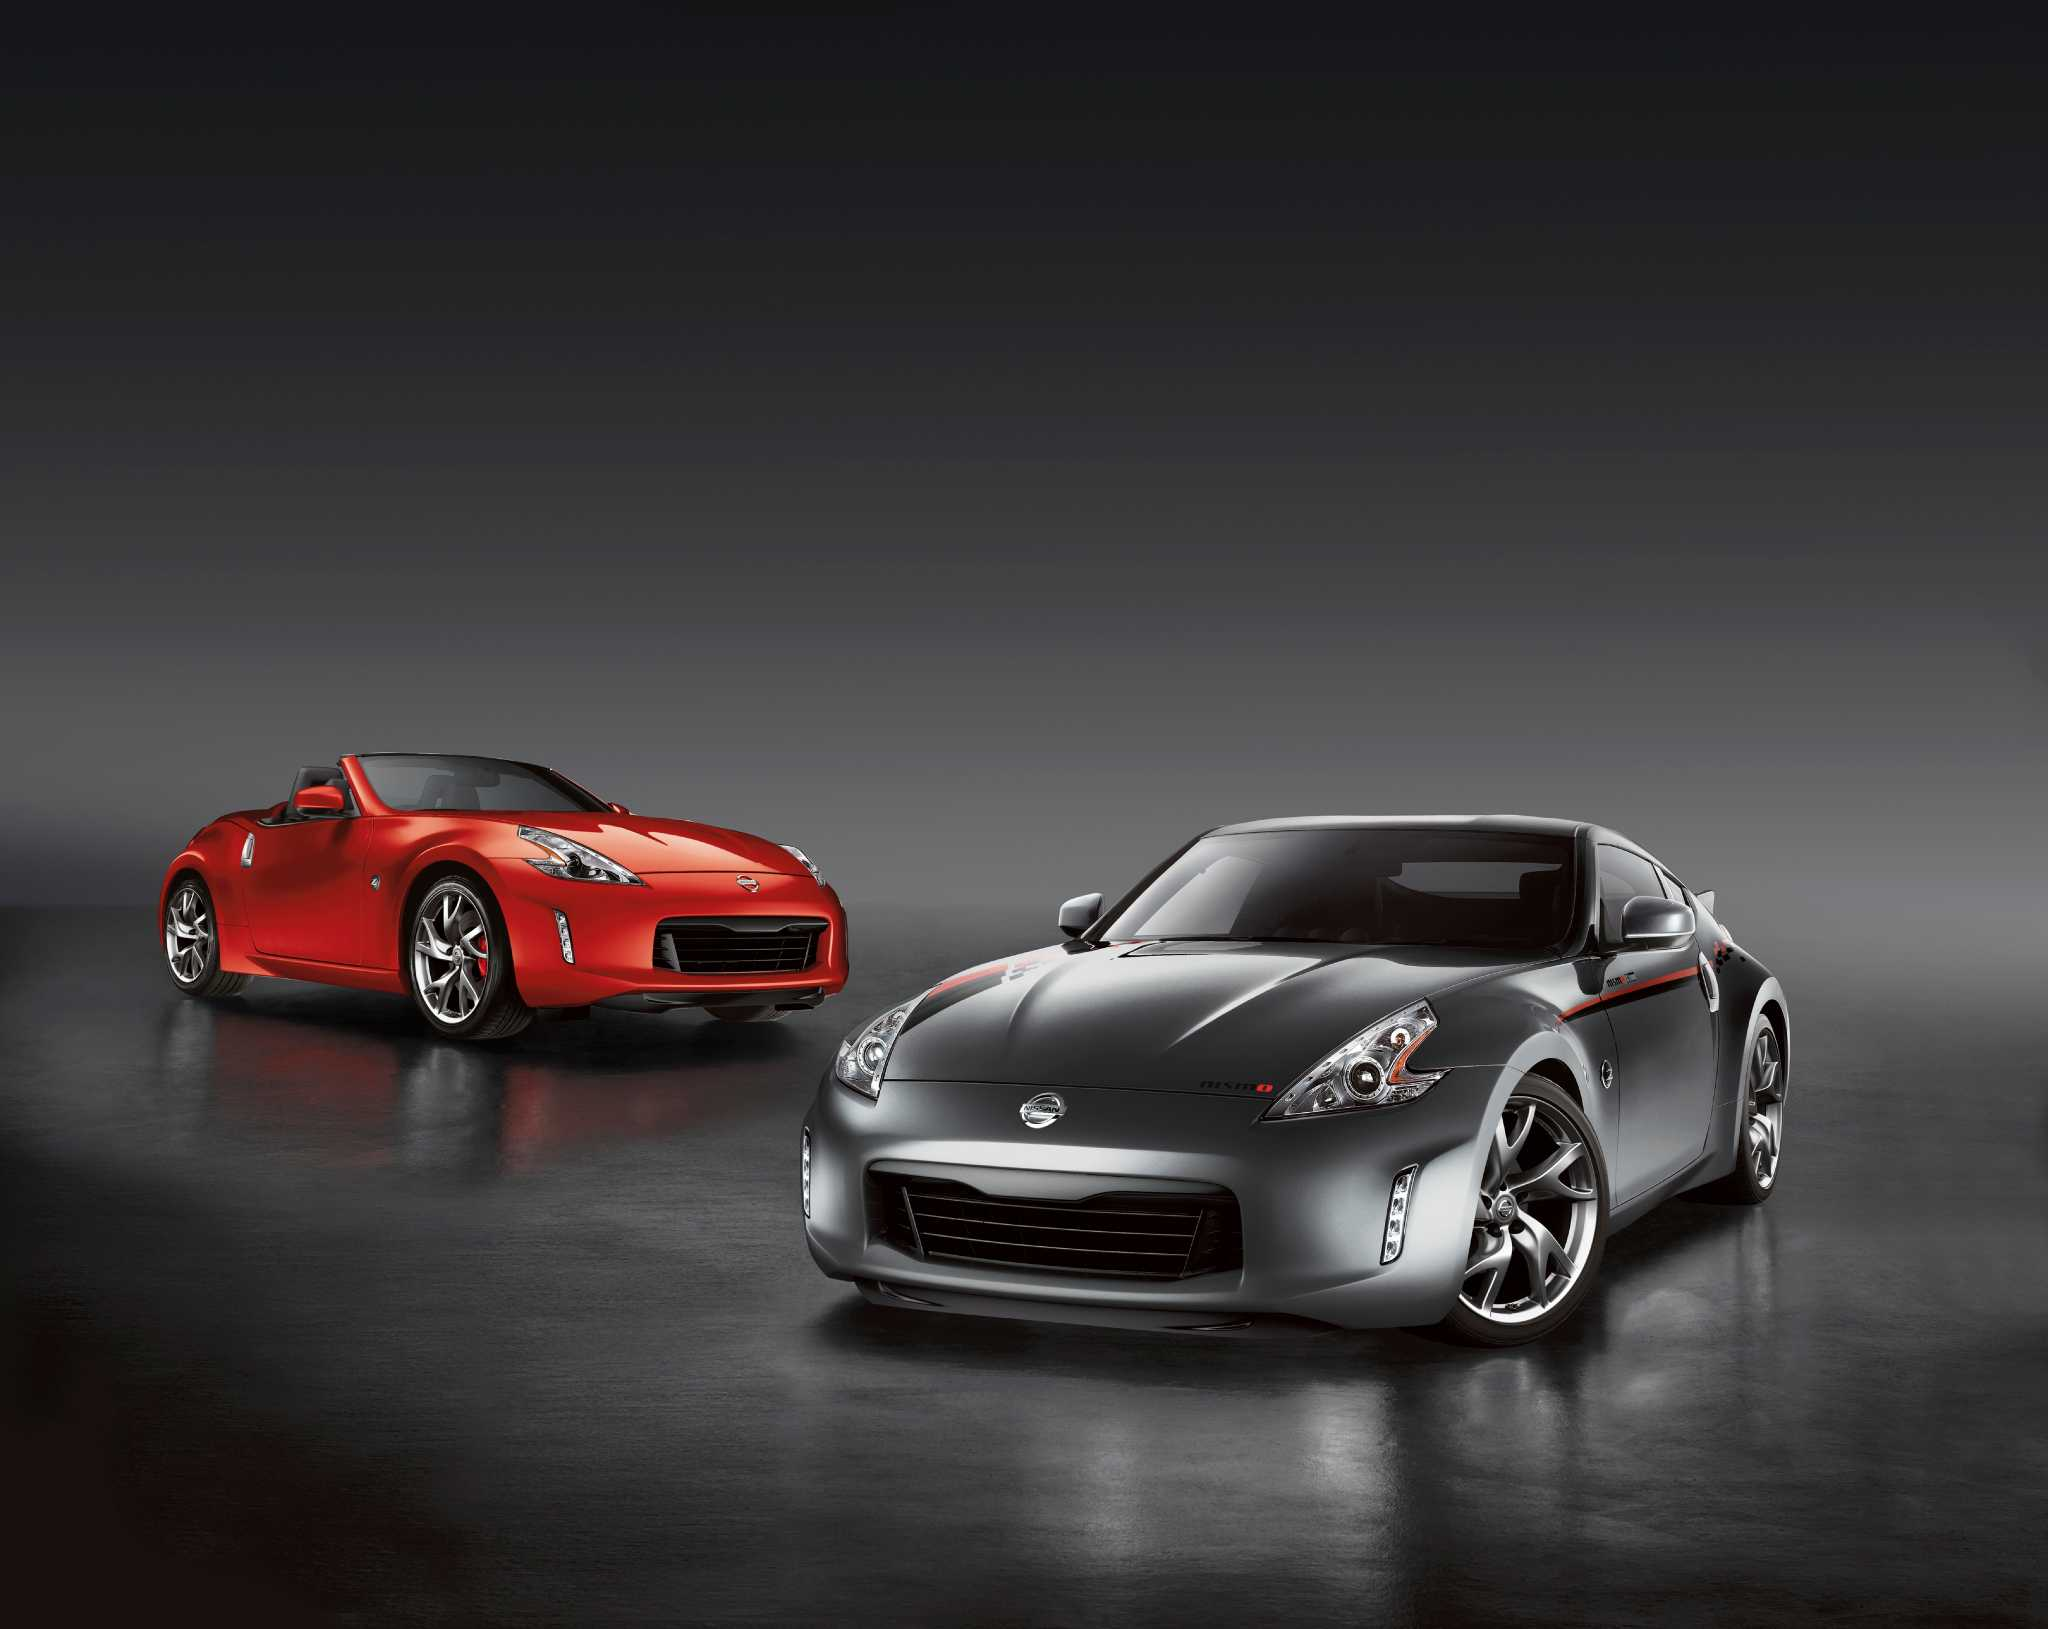 2016 Nissan 370Z Roadster: Top-down fun in a small package